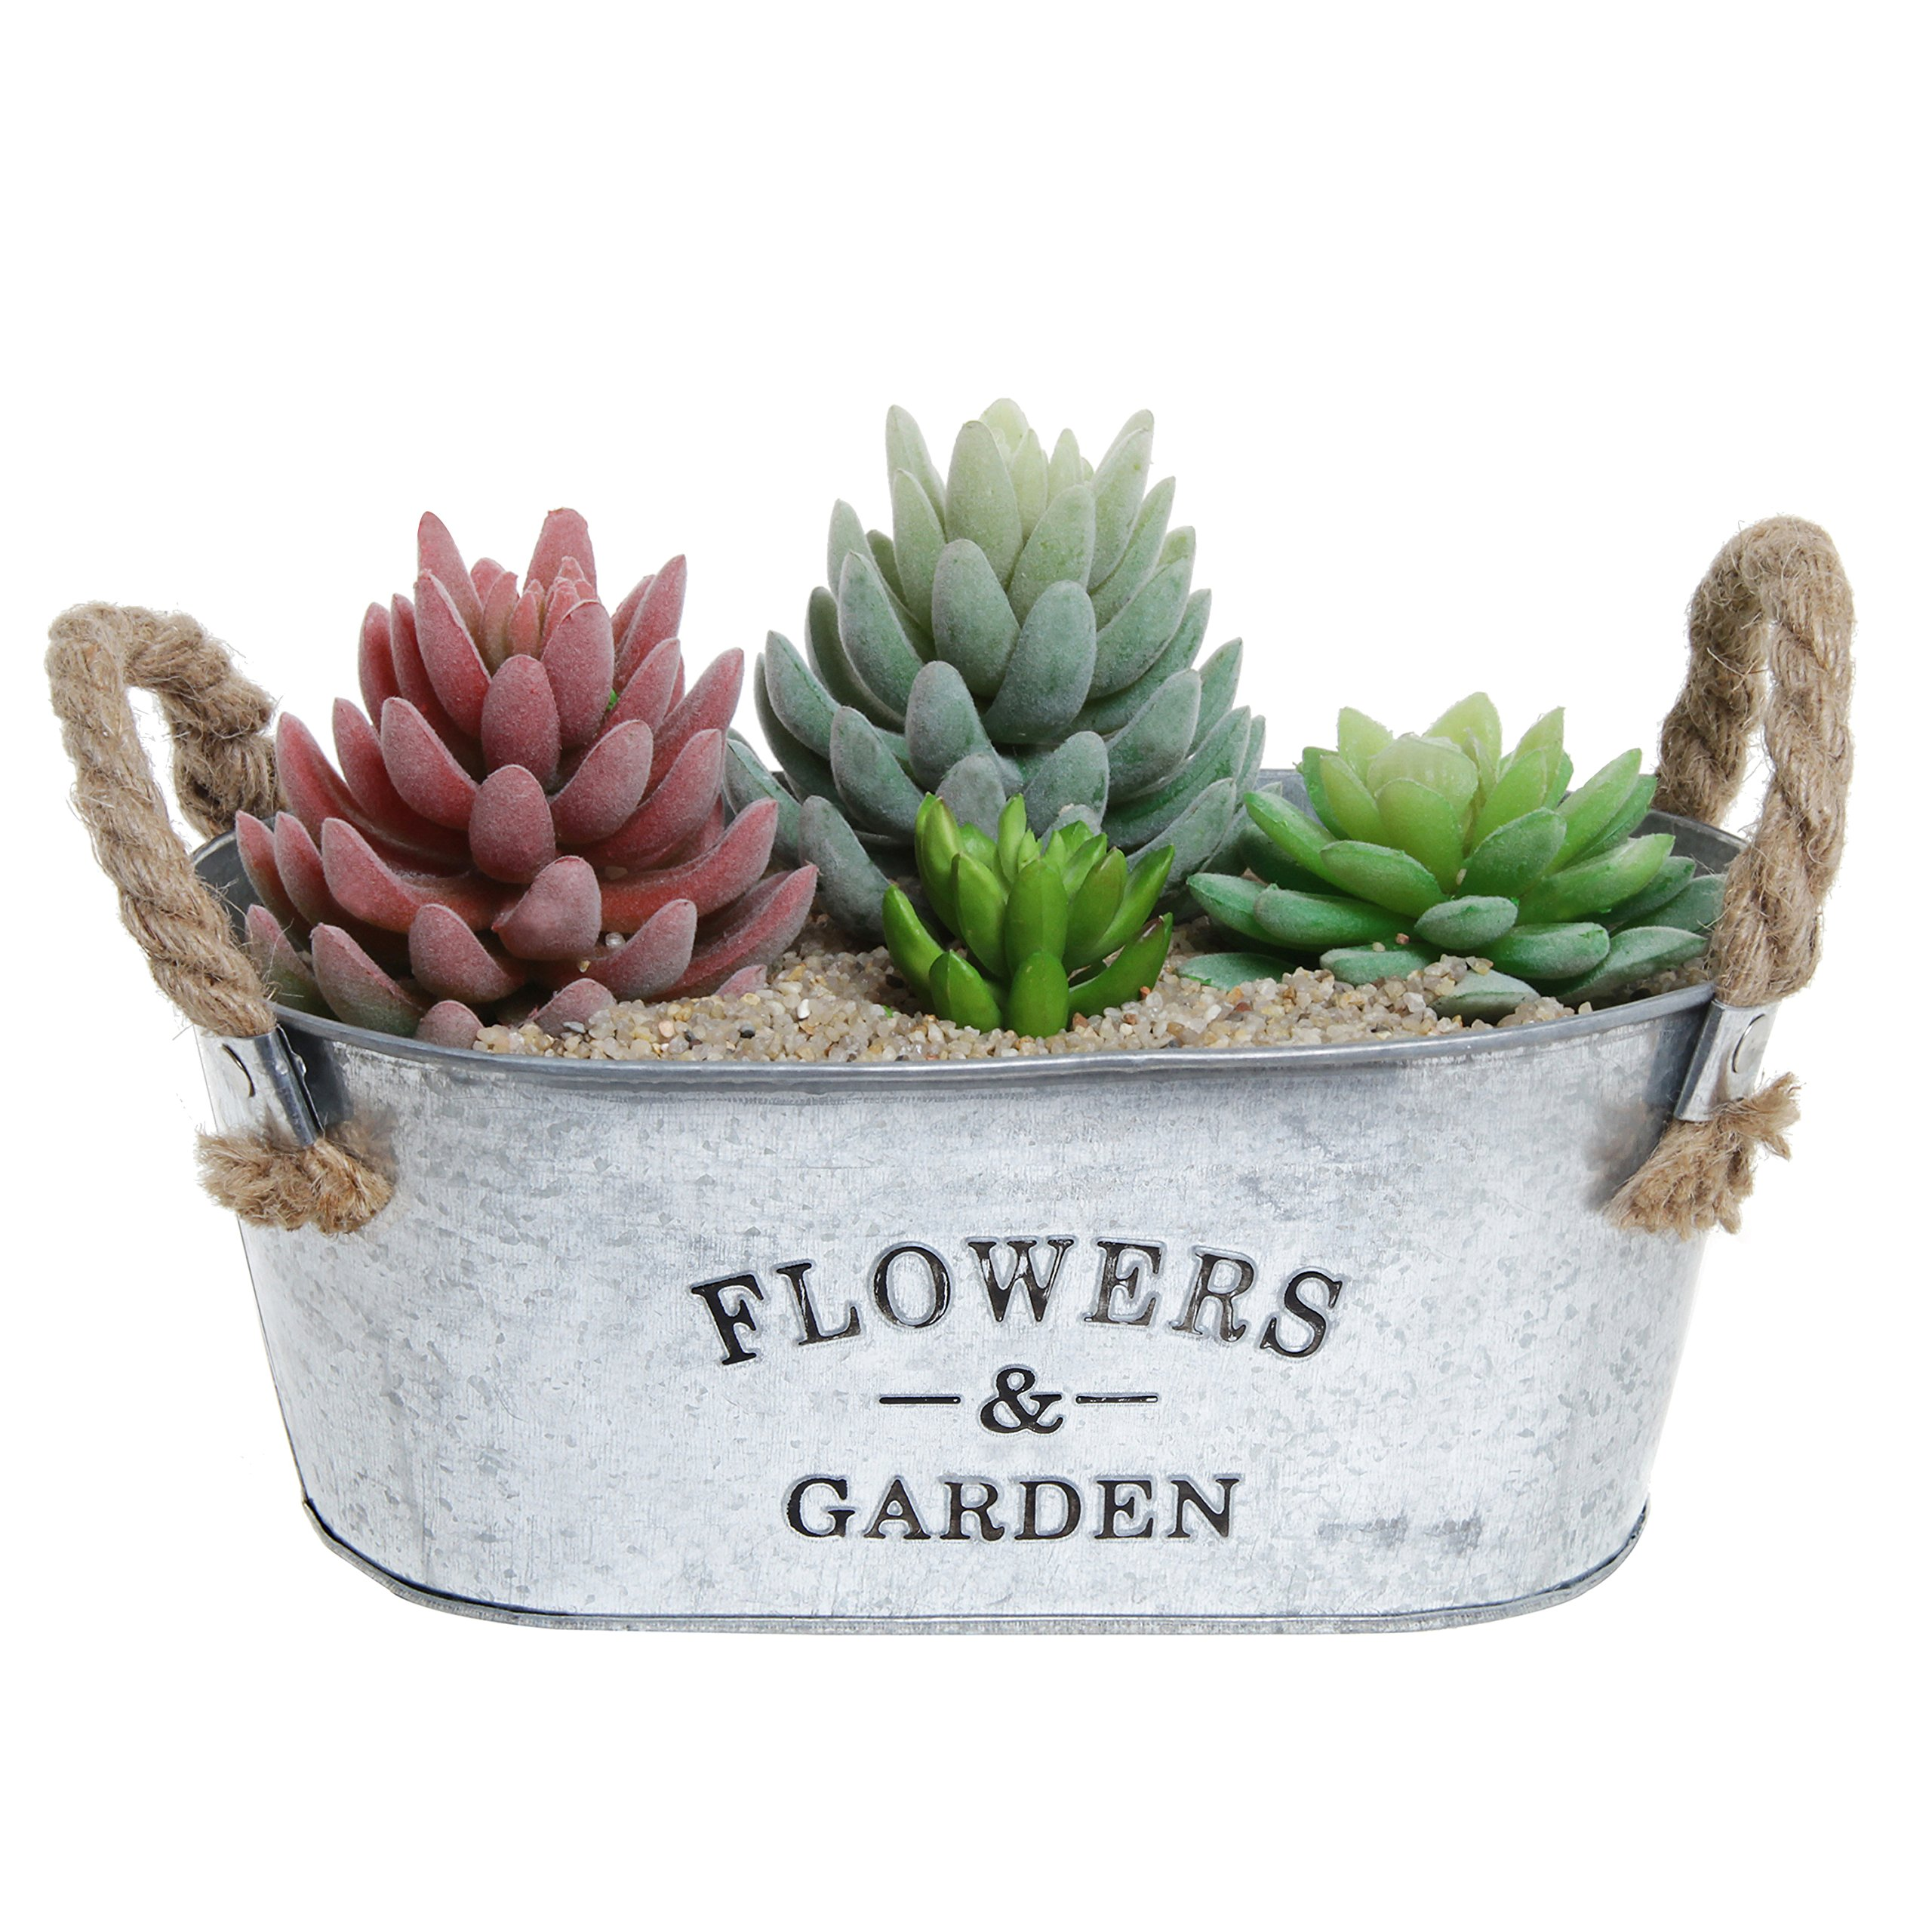 Rustic 'Flowers & Garden' Bucket Design Small Metal Succulent Plant Container w/ Twine Handles - MyGift